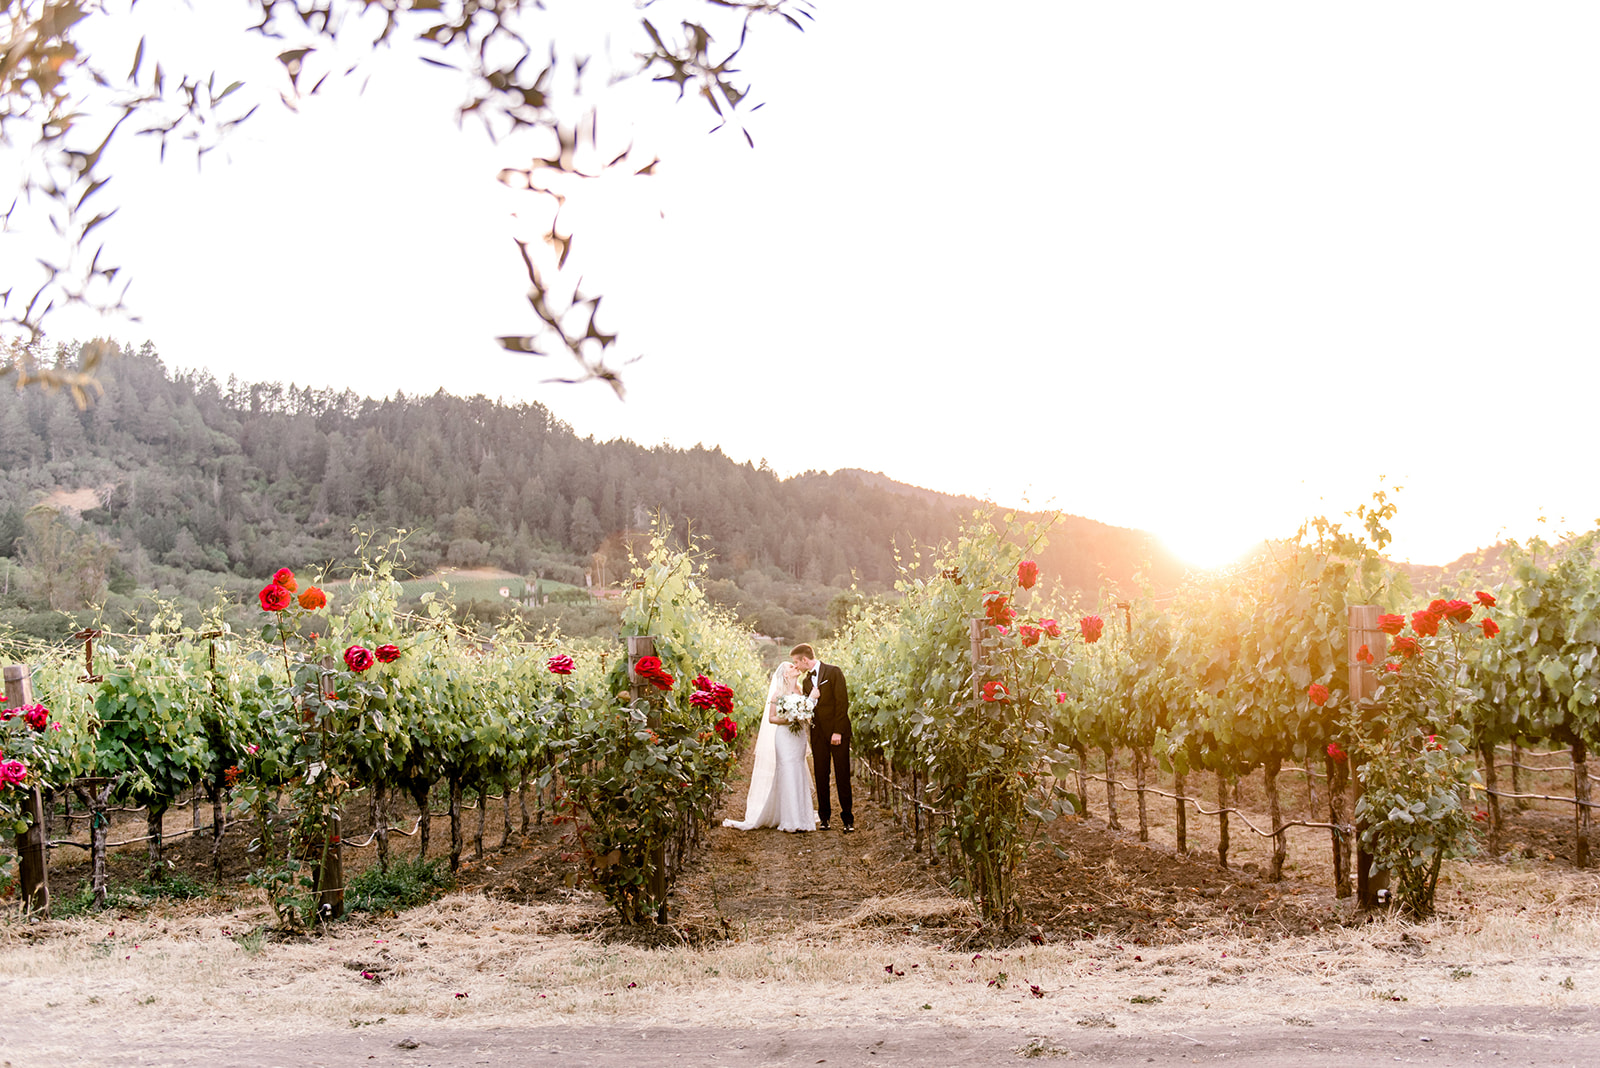 Not to Be Missed Photos at Your Vineyard Wedding Venue